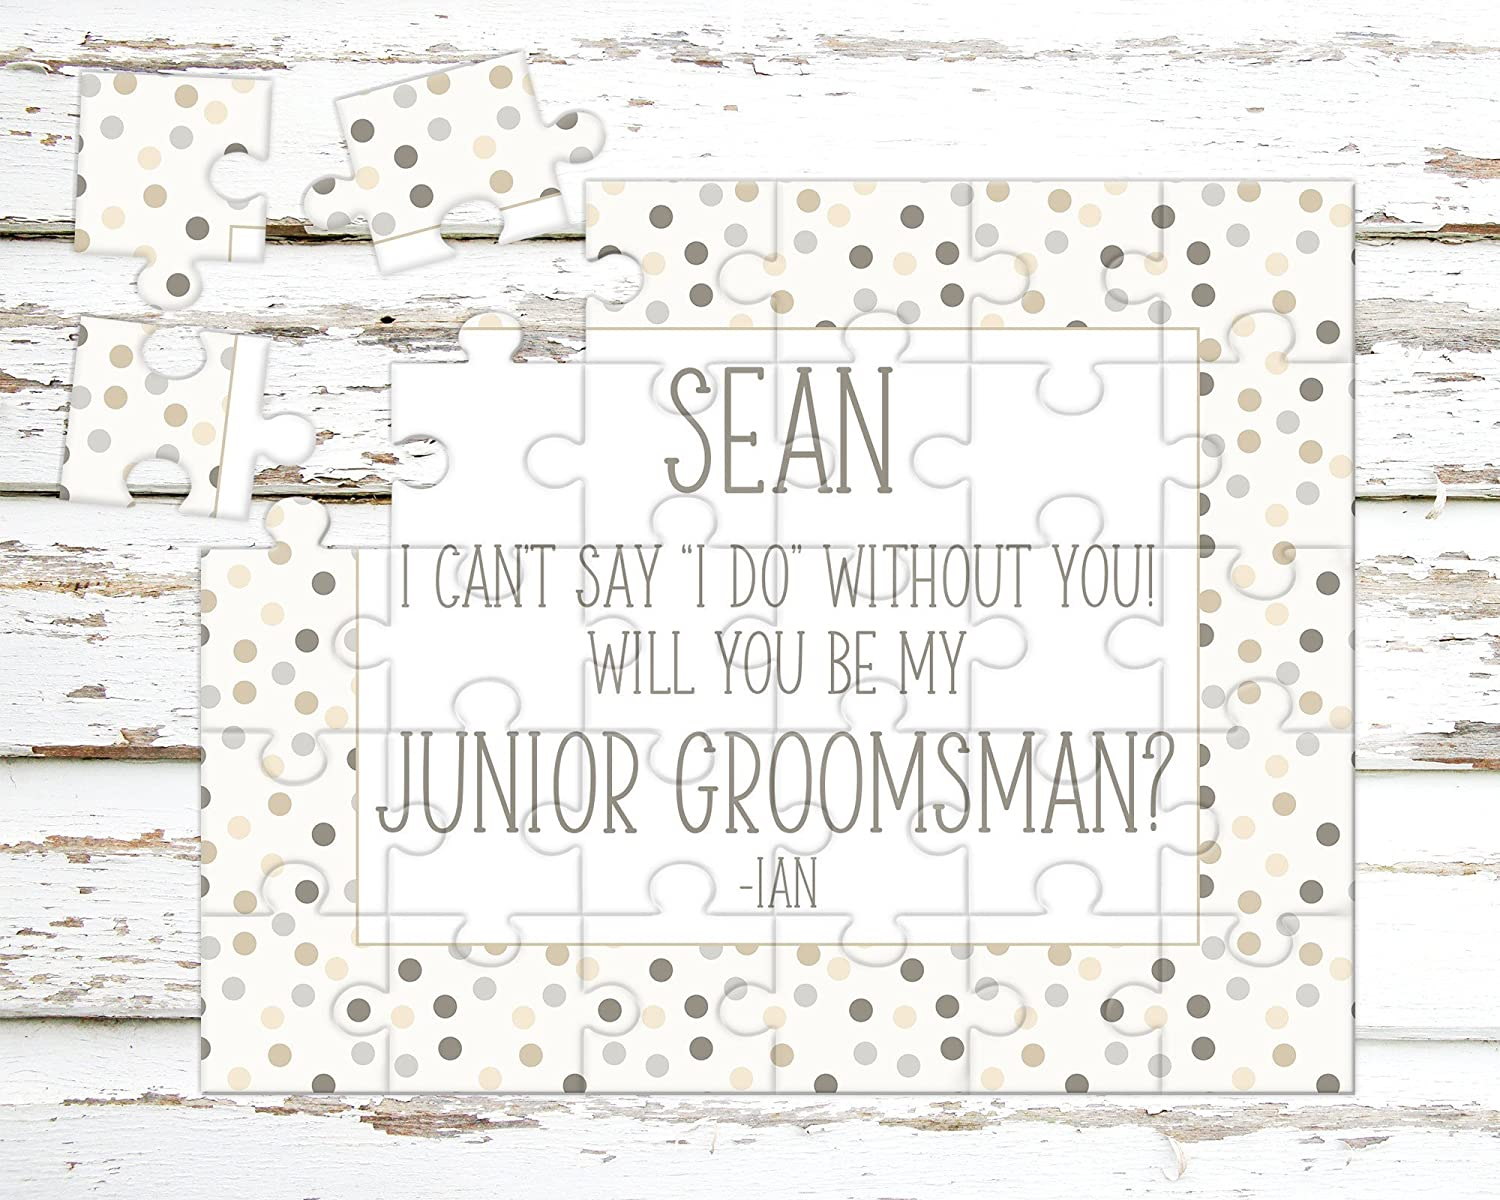 Personalized Junior Groomsman Puzzle - Puzzle Proposal - Asking Junior Groomsman - Wedding Announcement - P1197